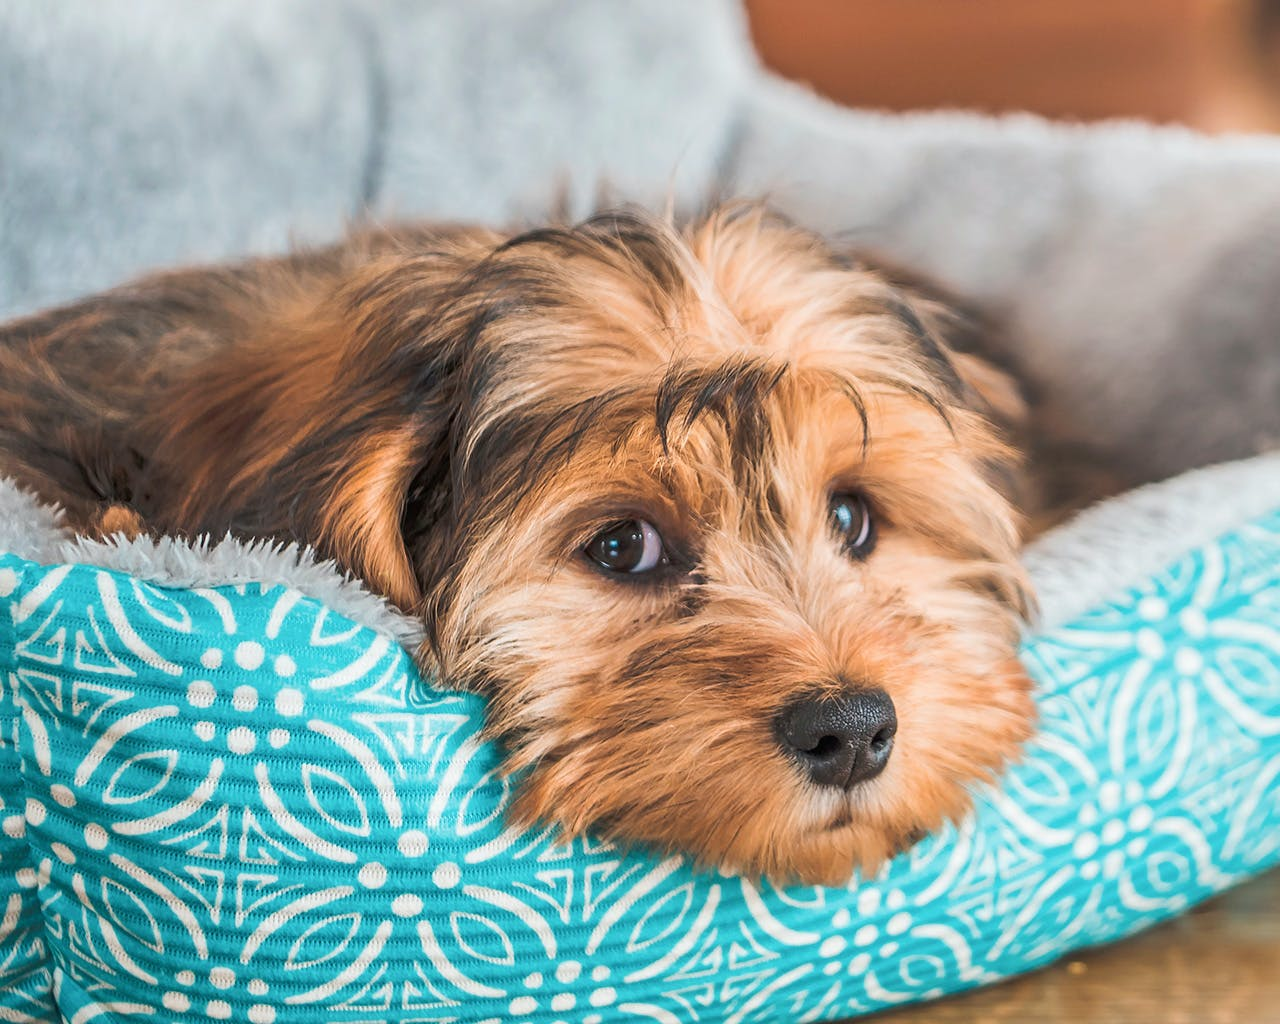 Beware, Even Your Pets May Bite You! Here's What You Should Do If That Happens